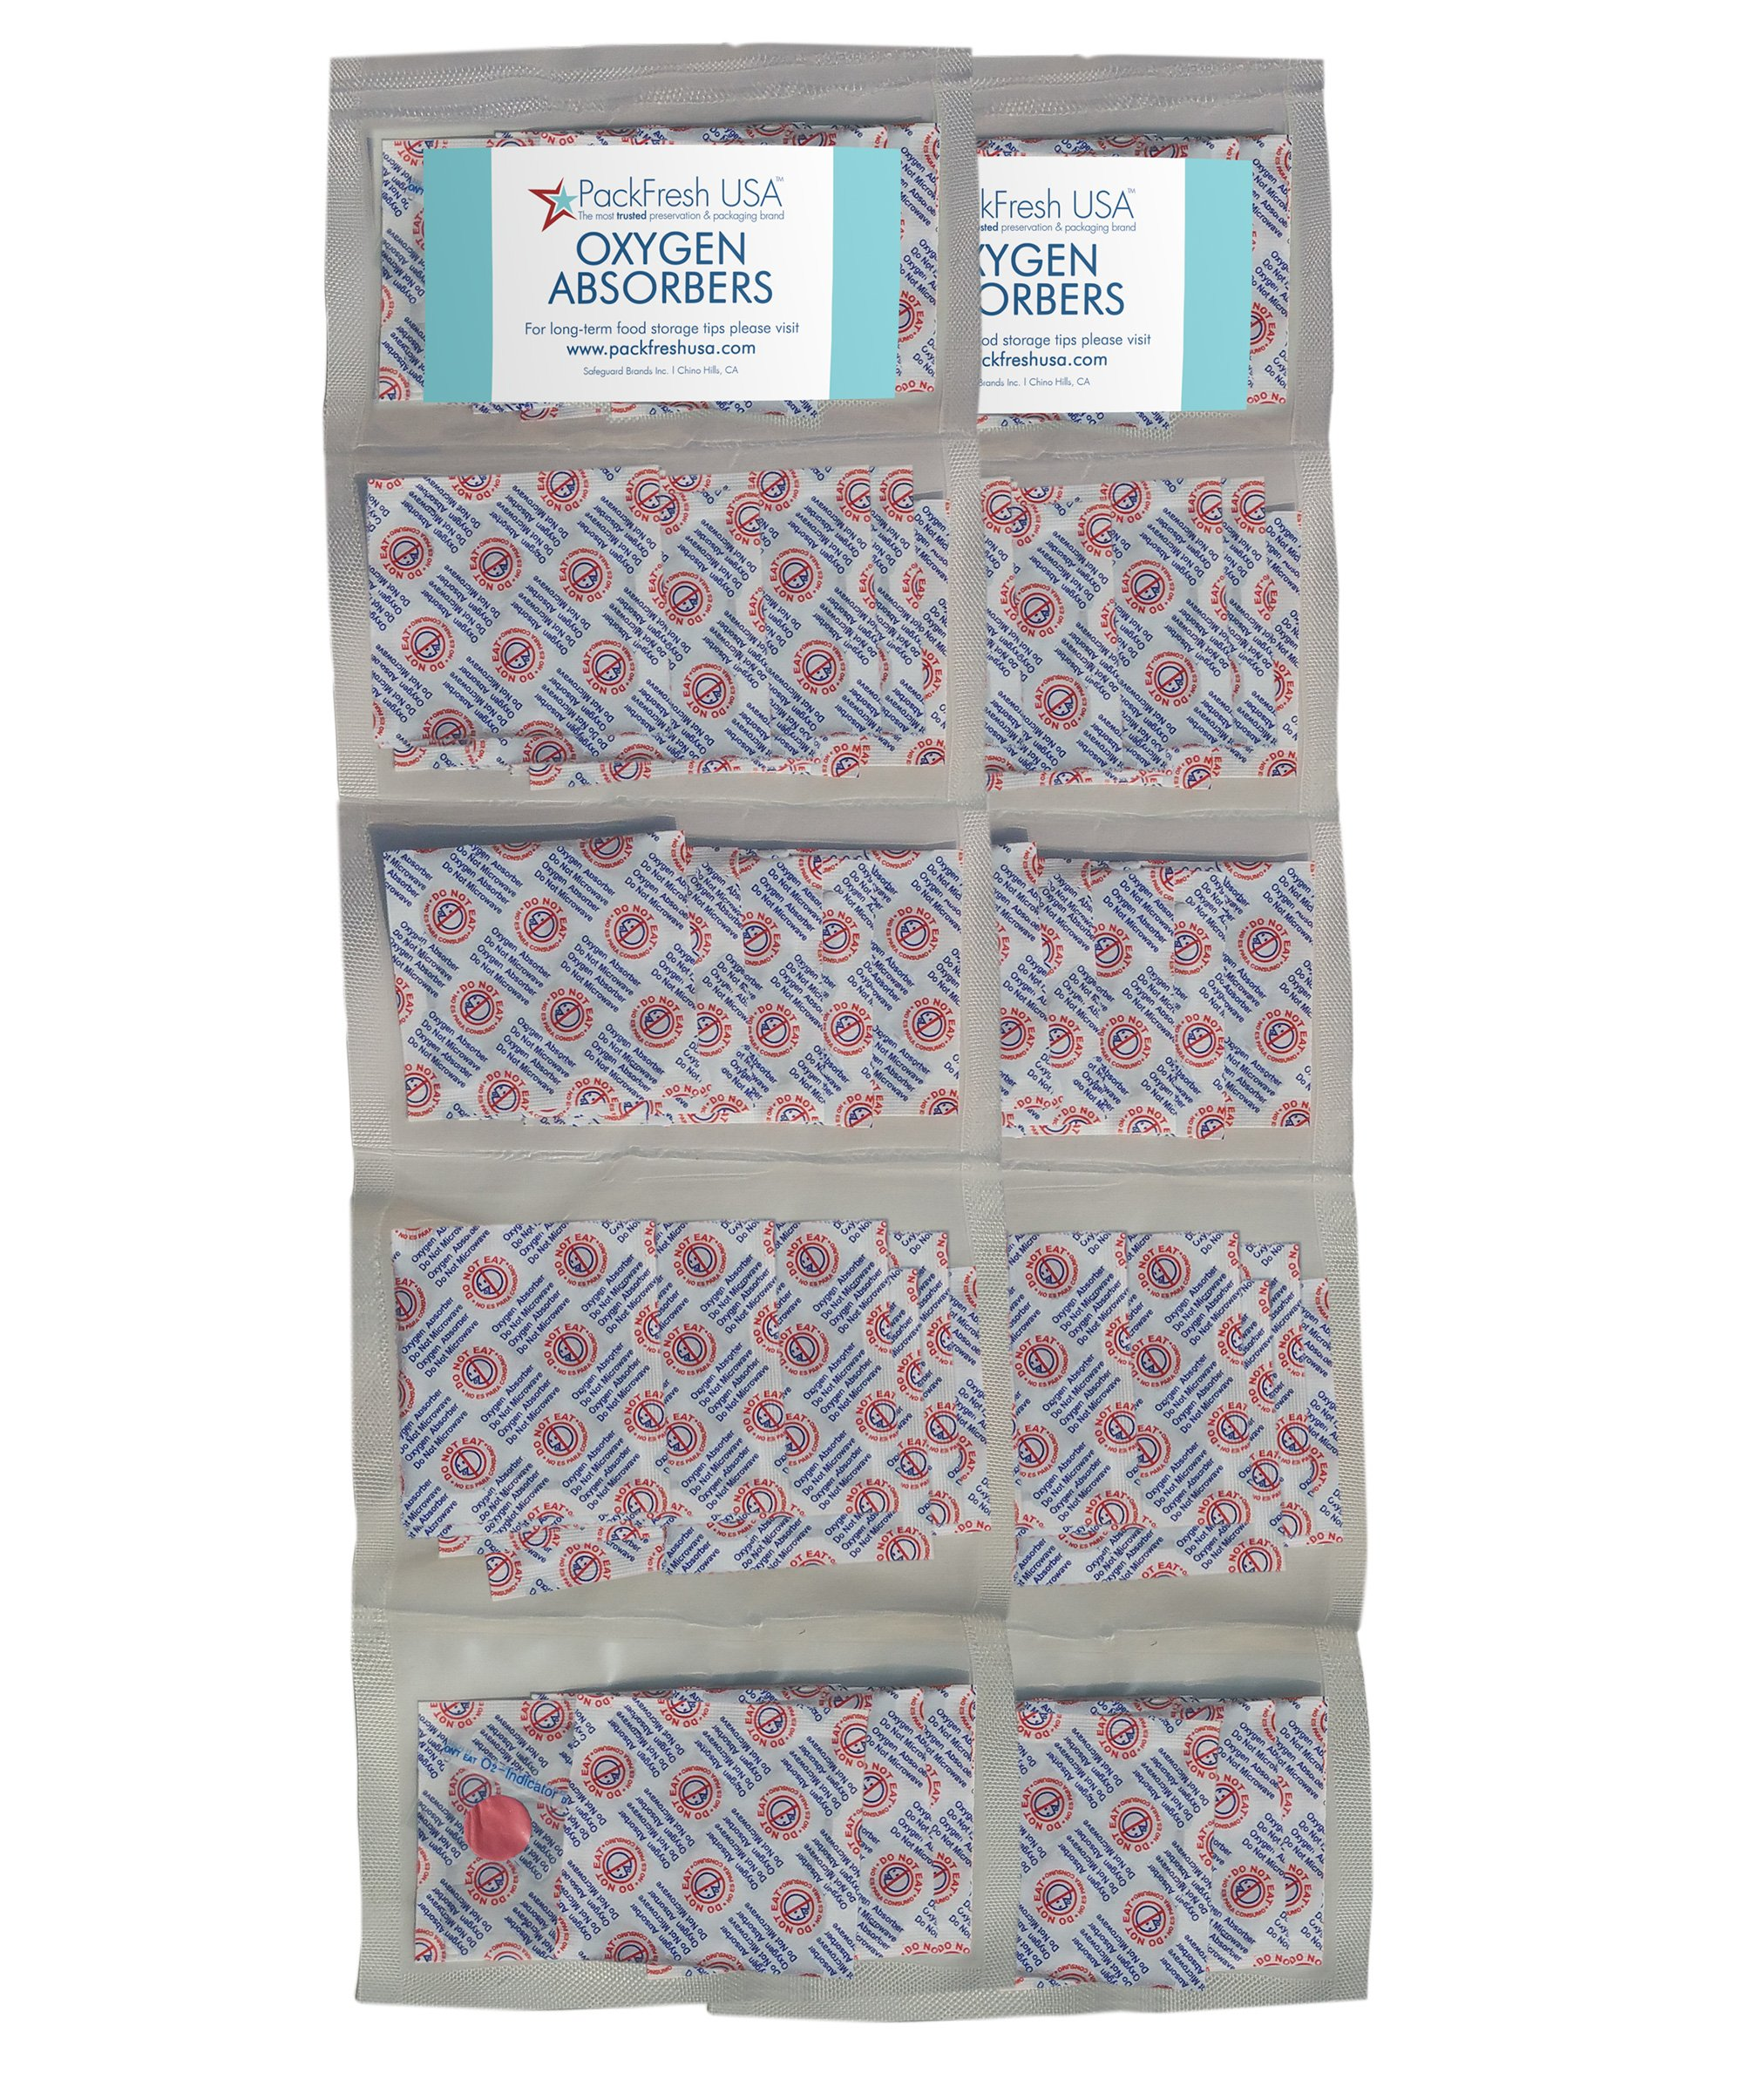 300cc Oxygen Absorber Compartment Packs (100, in 10 Compartments)